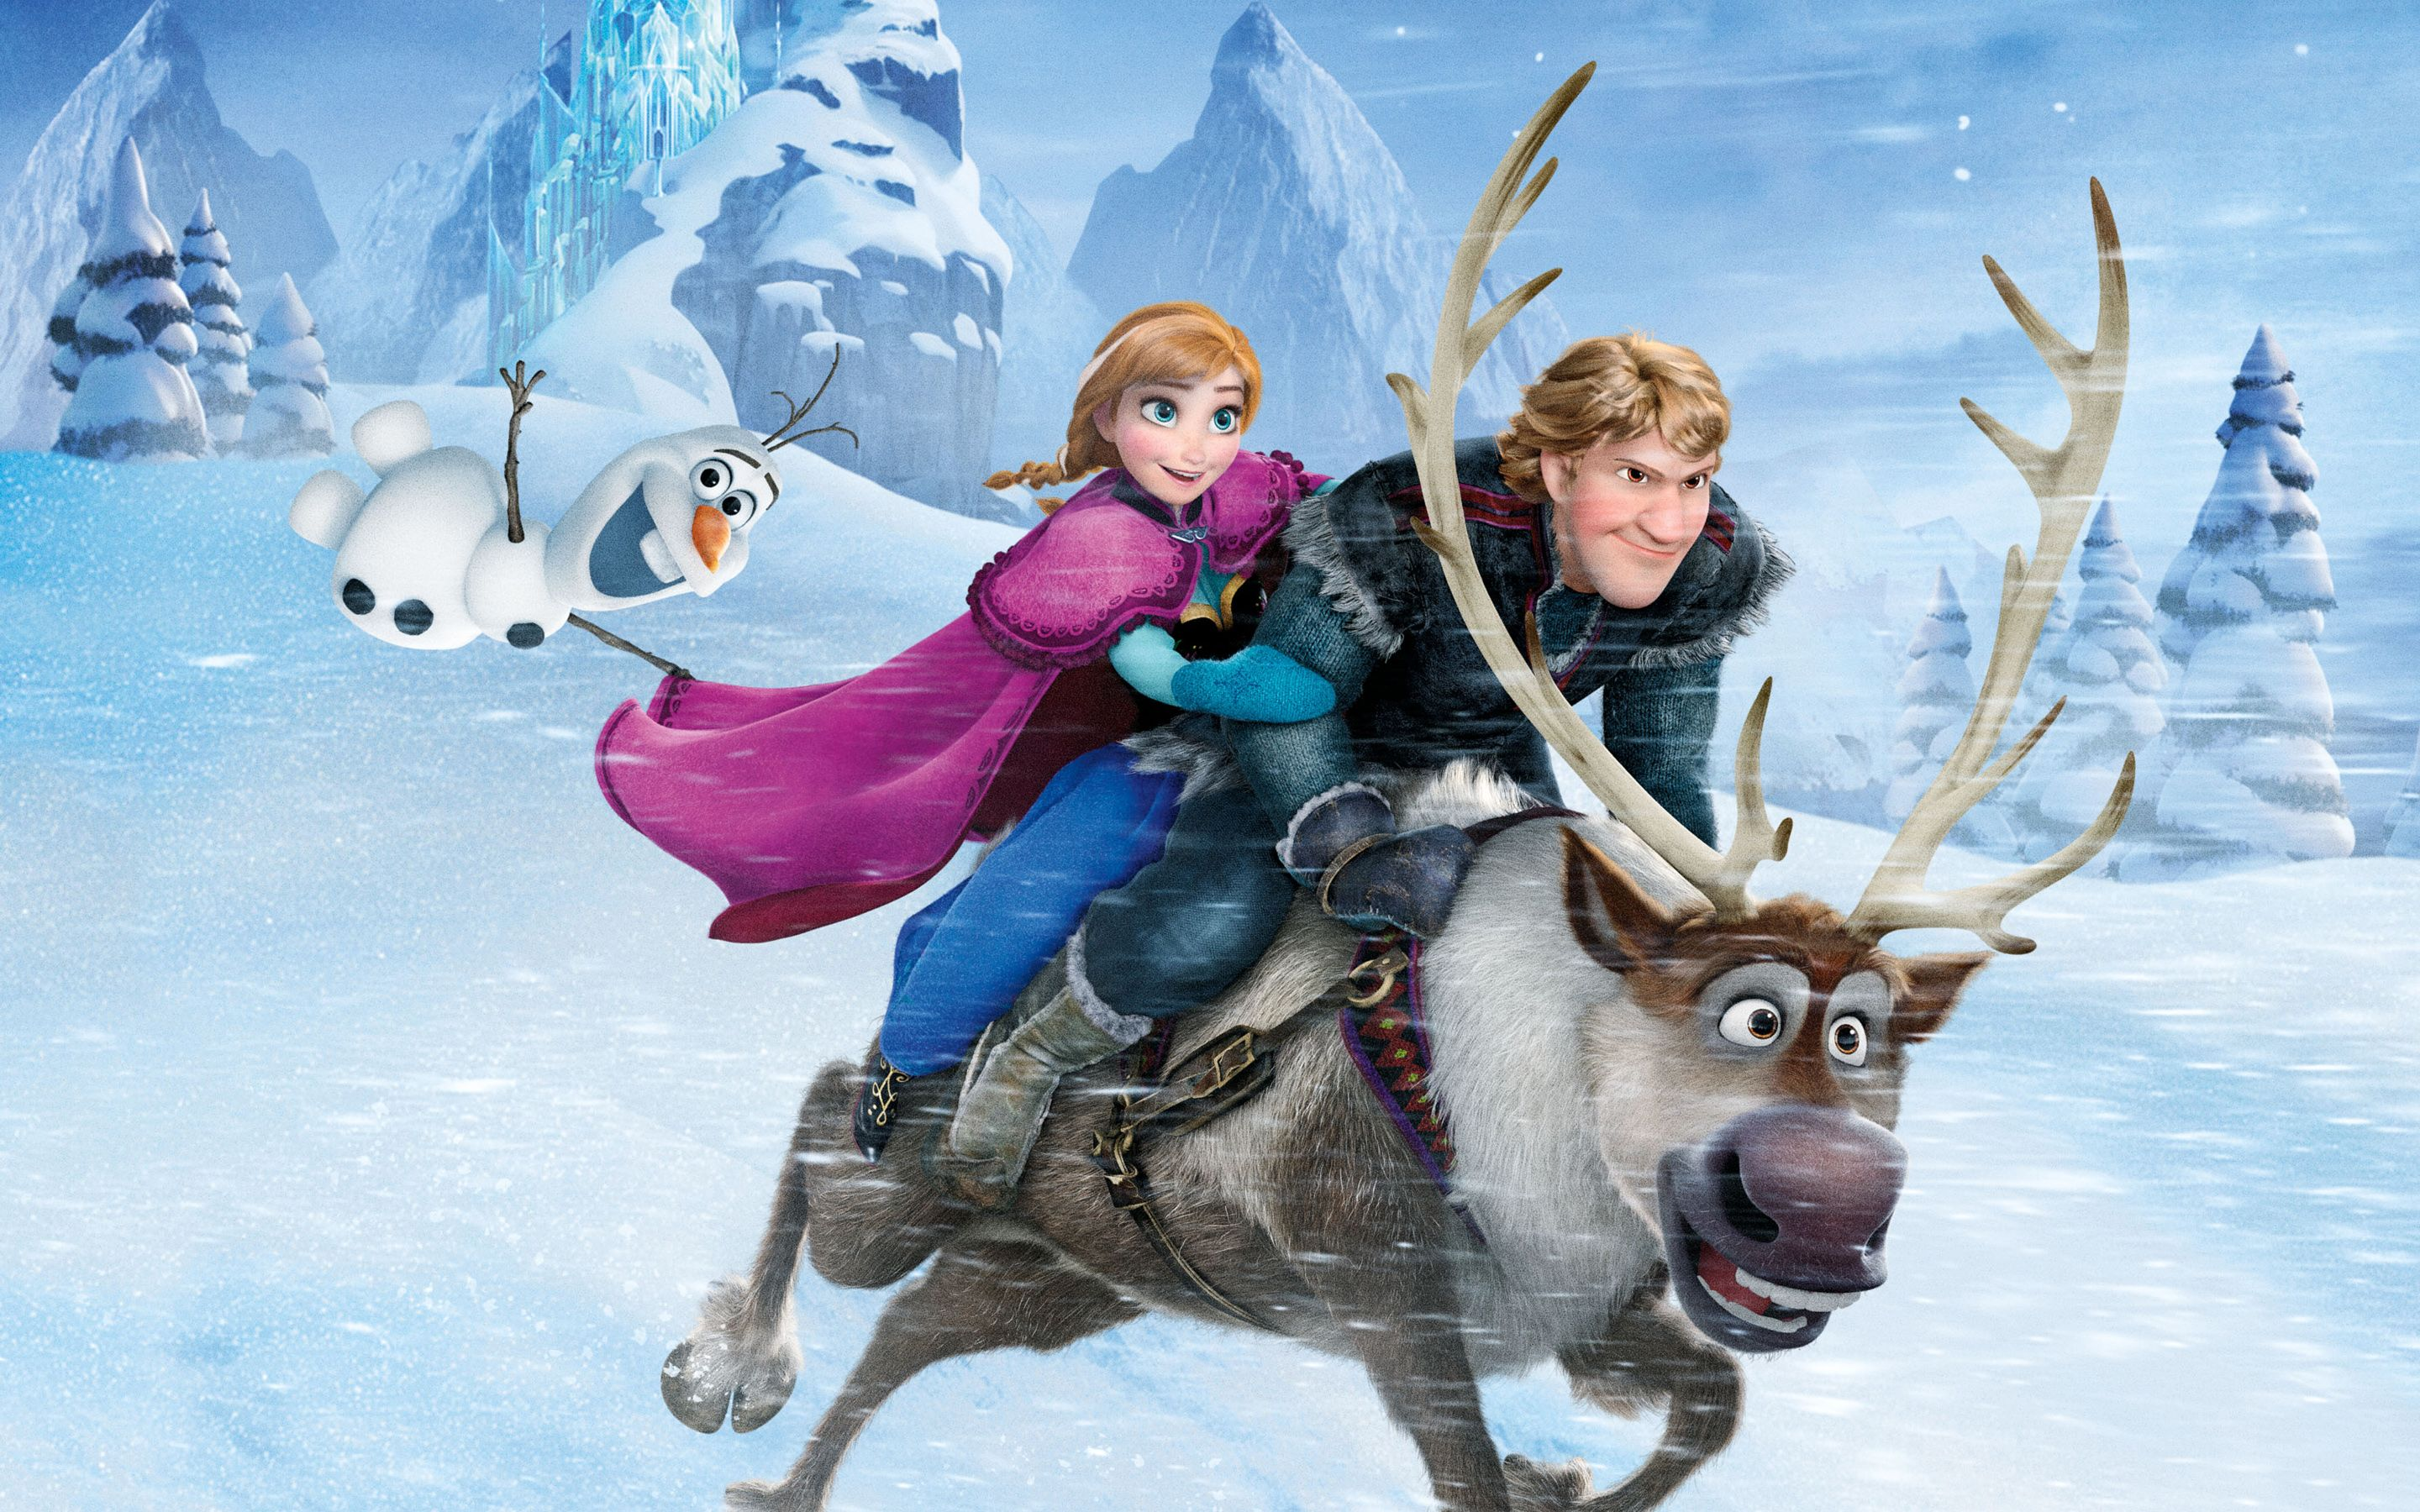 watch frozen movie online free in hq, hd | download frozen movie